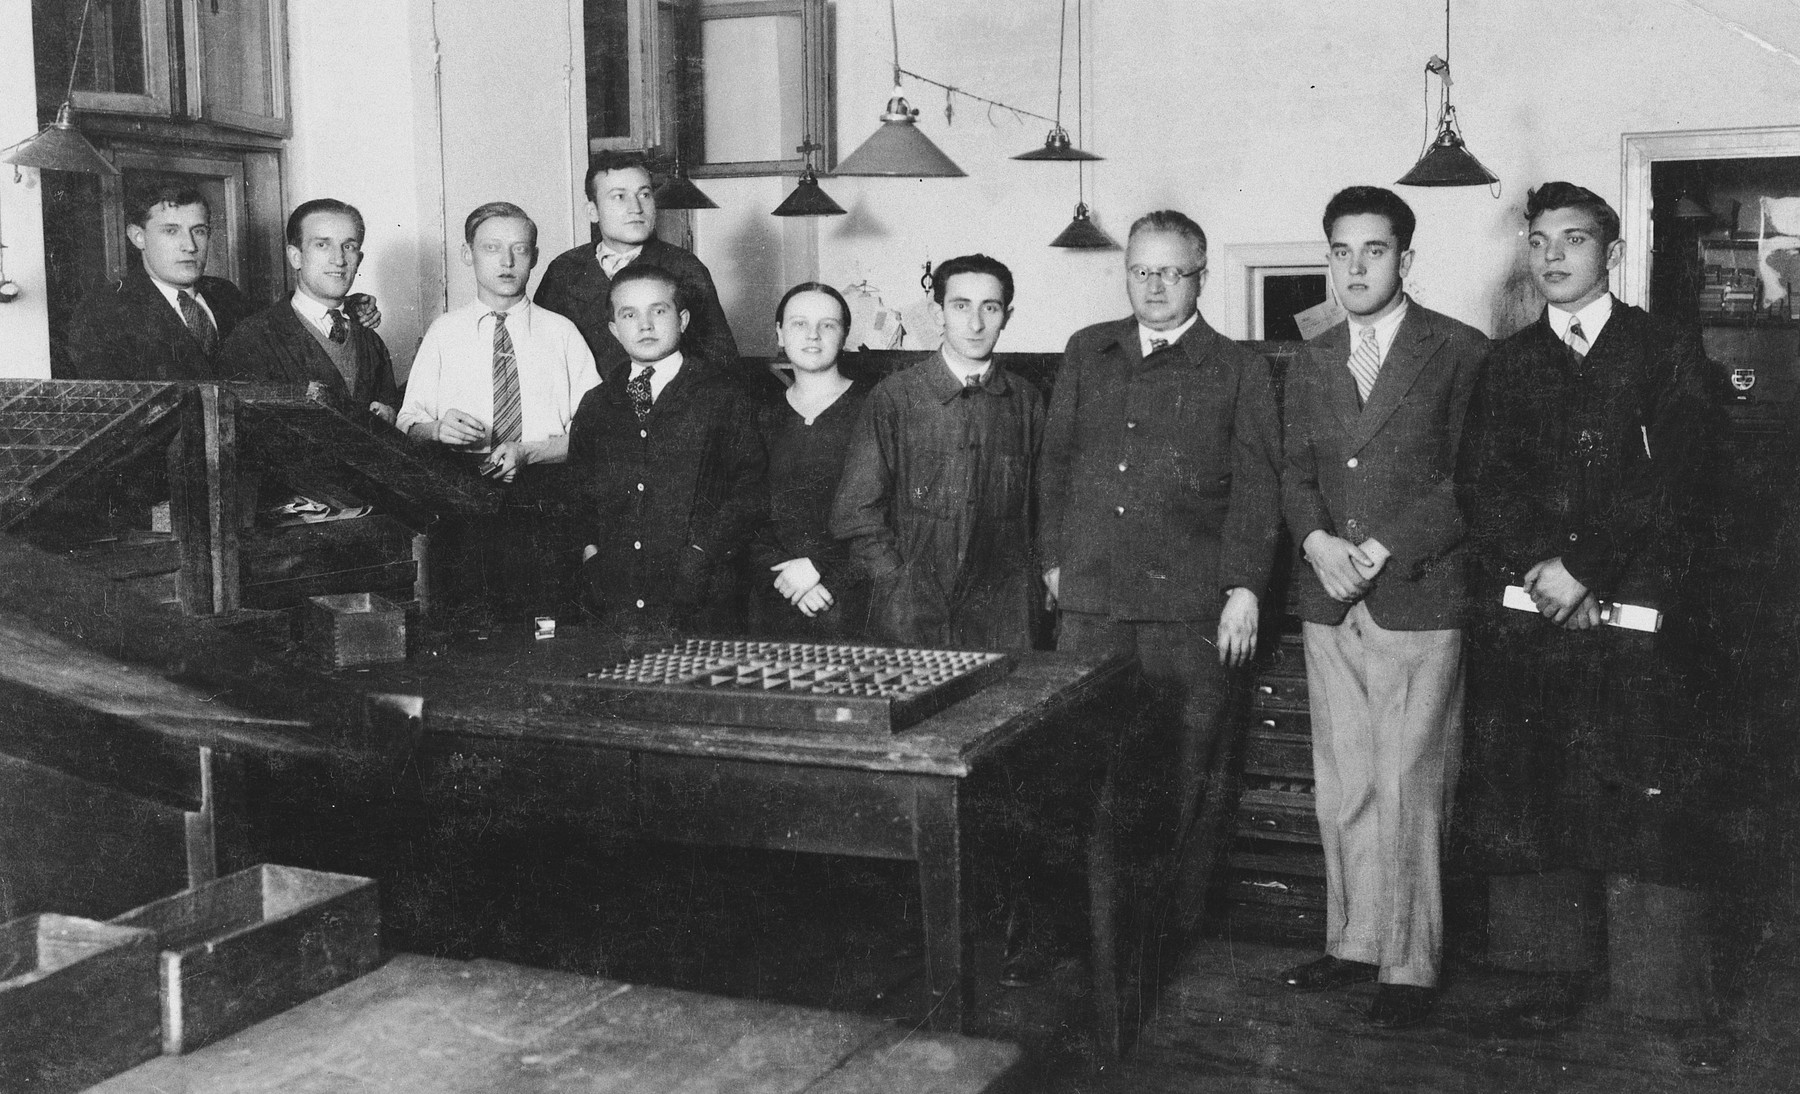 Polish and Jewish workers in a printing press in Kalisz.  Among those pictured is Heniek Storch (fourth from the right) who was head of his section.